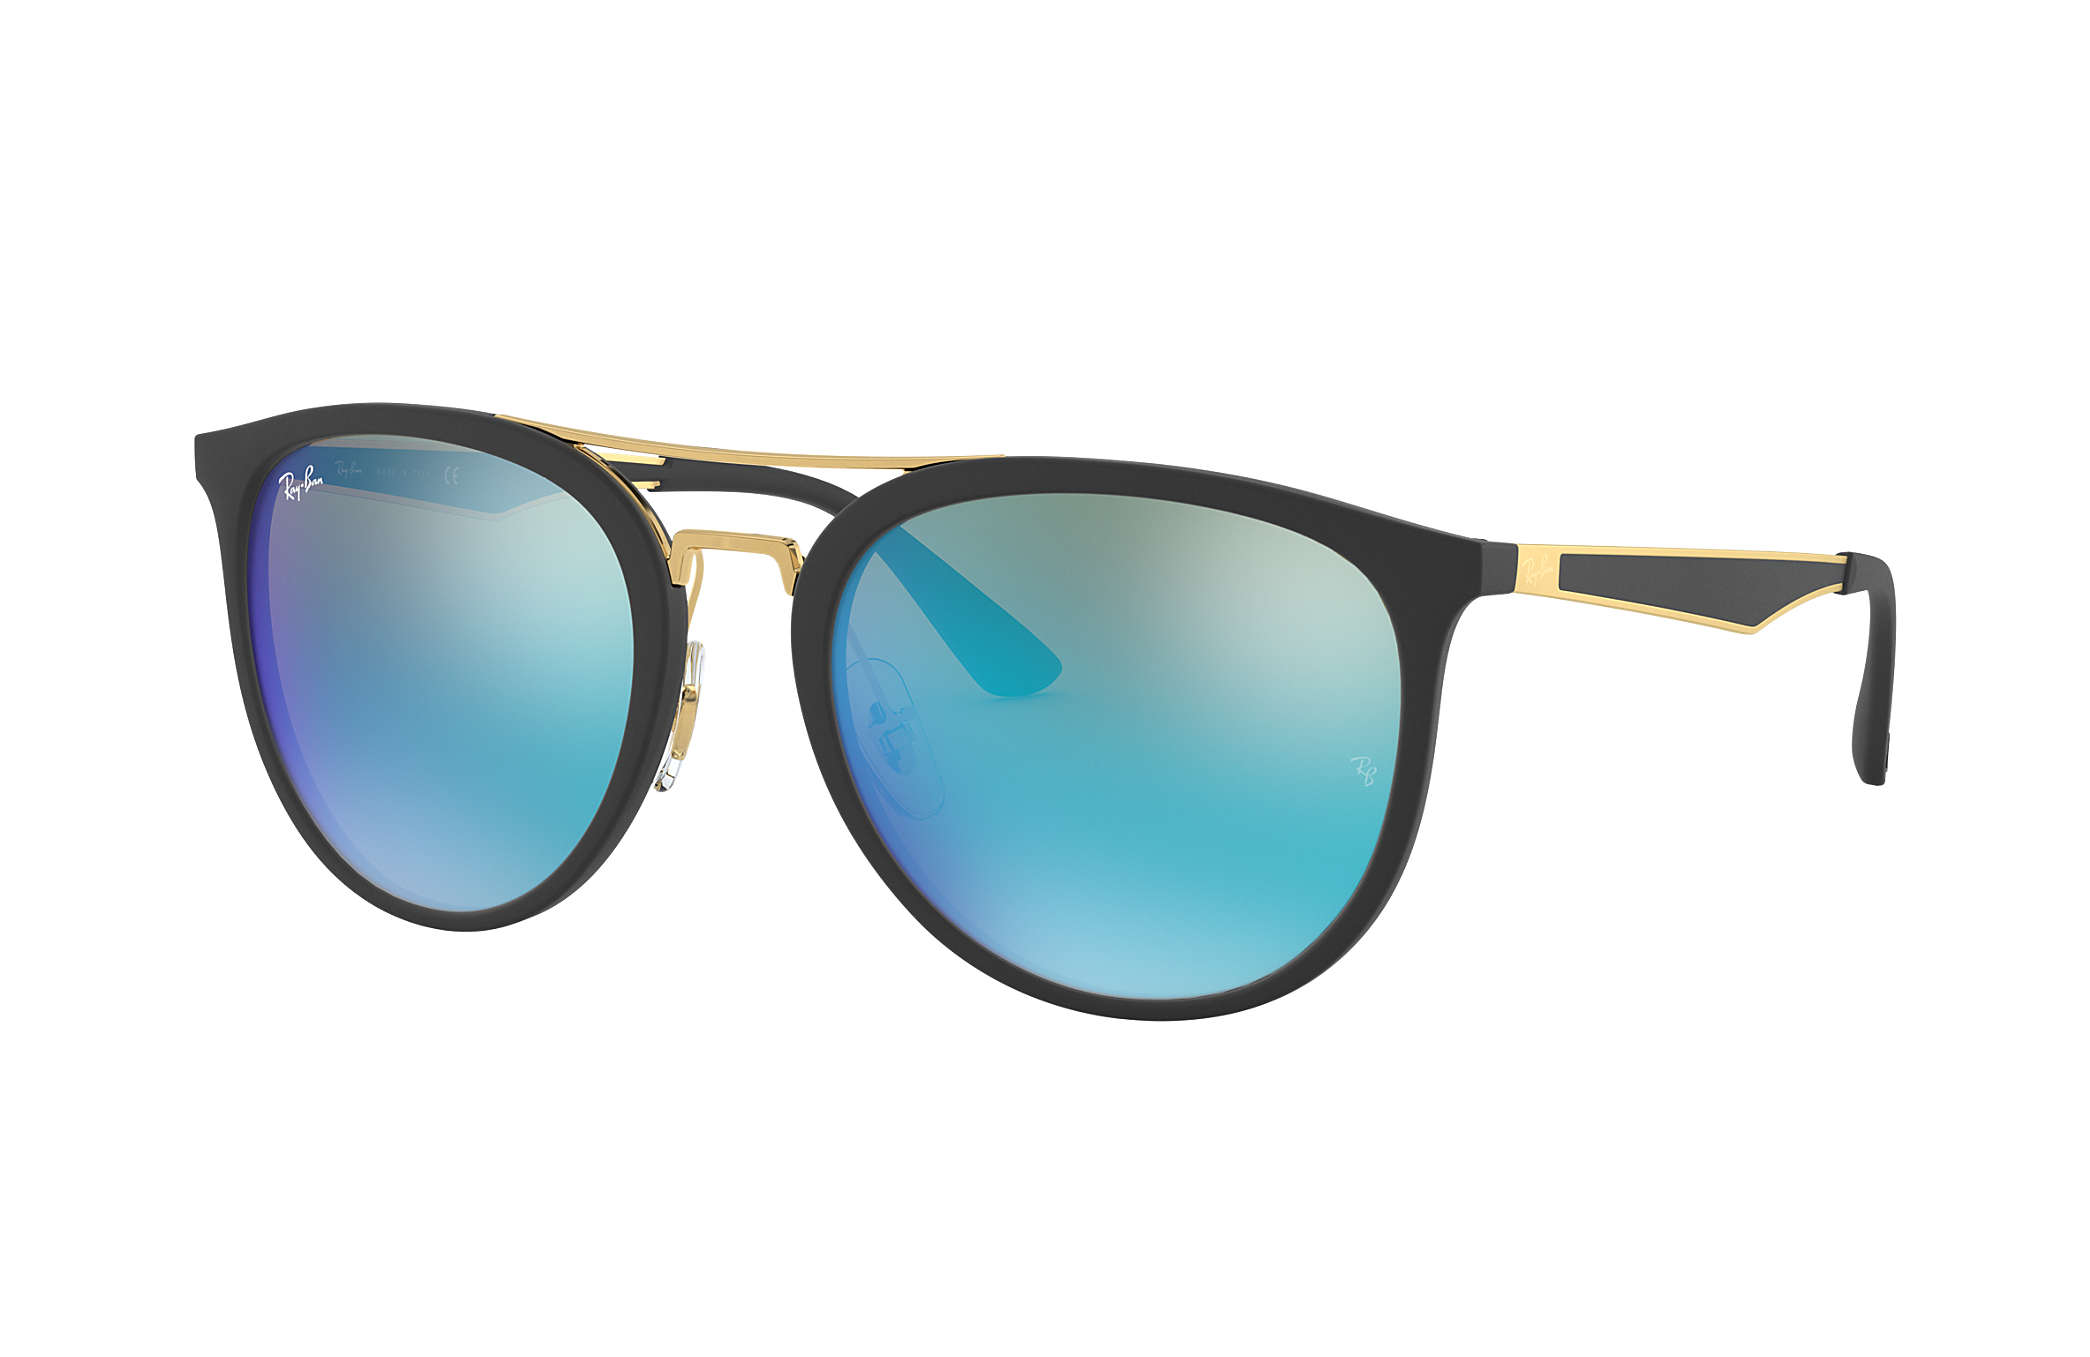 Ray-Ban RB4285 Noir - Injected - Verres Bleu - 0RB4285601S5555   Ray ... 36d35db2e081